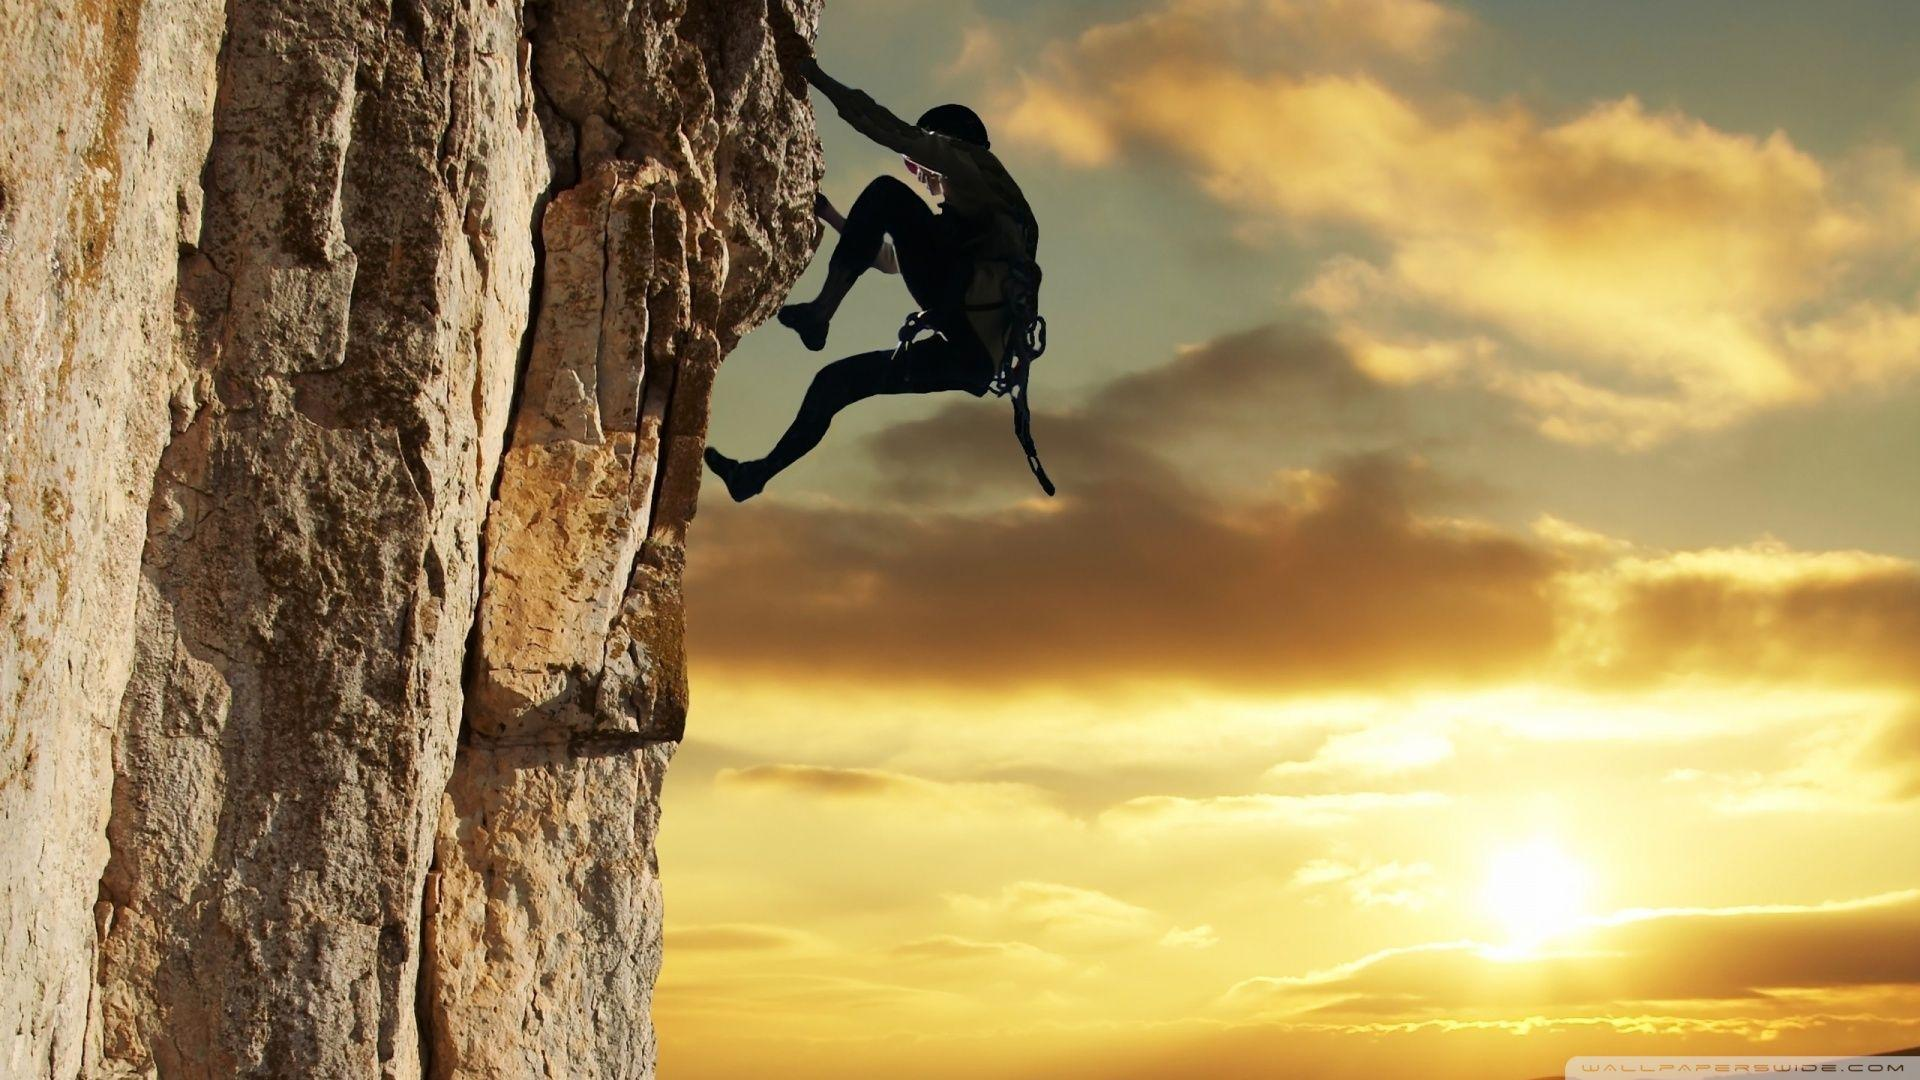 Rock Climbing HD desktop wallpapers : High Definition : Fullscreen